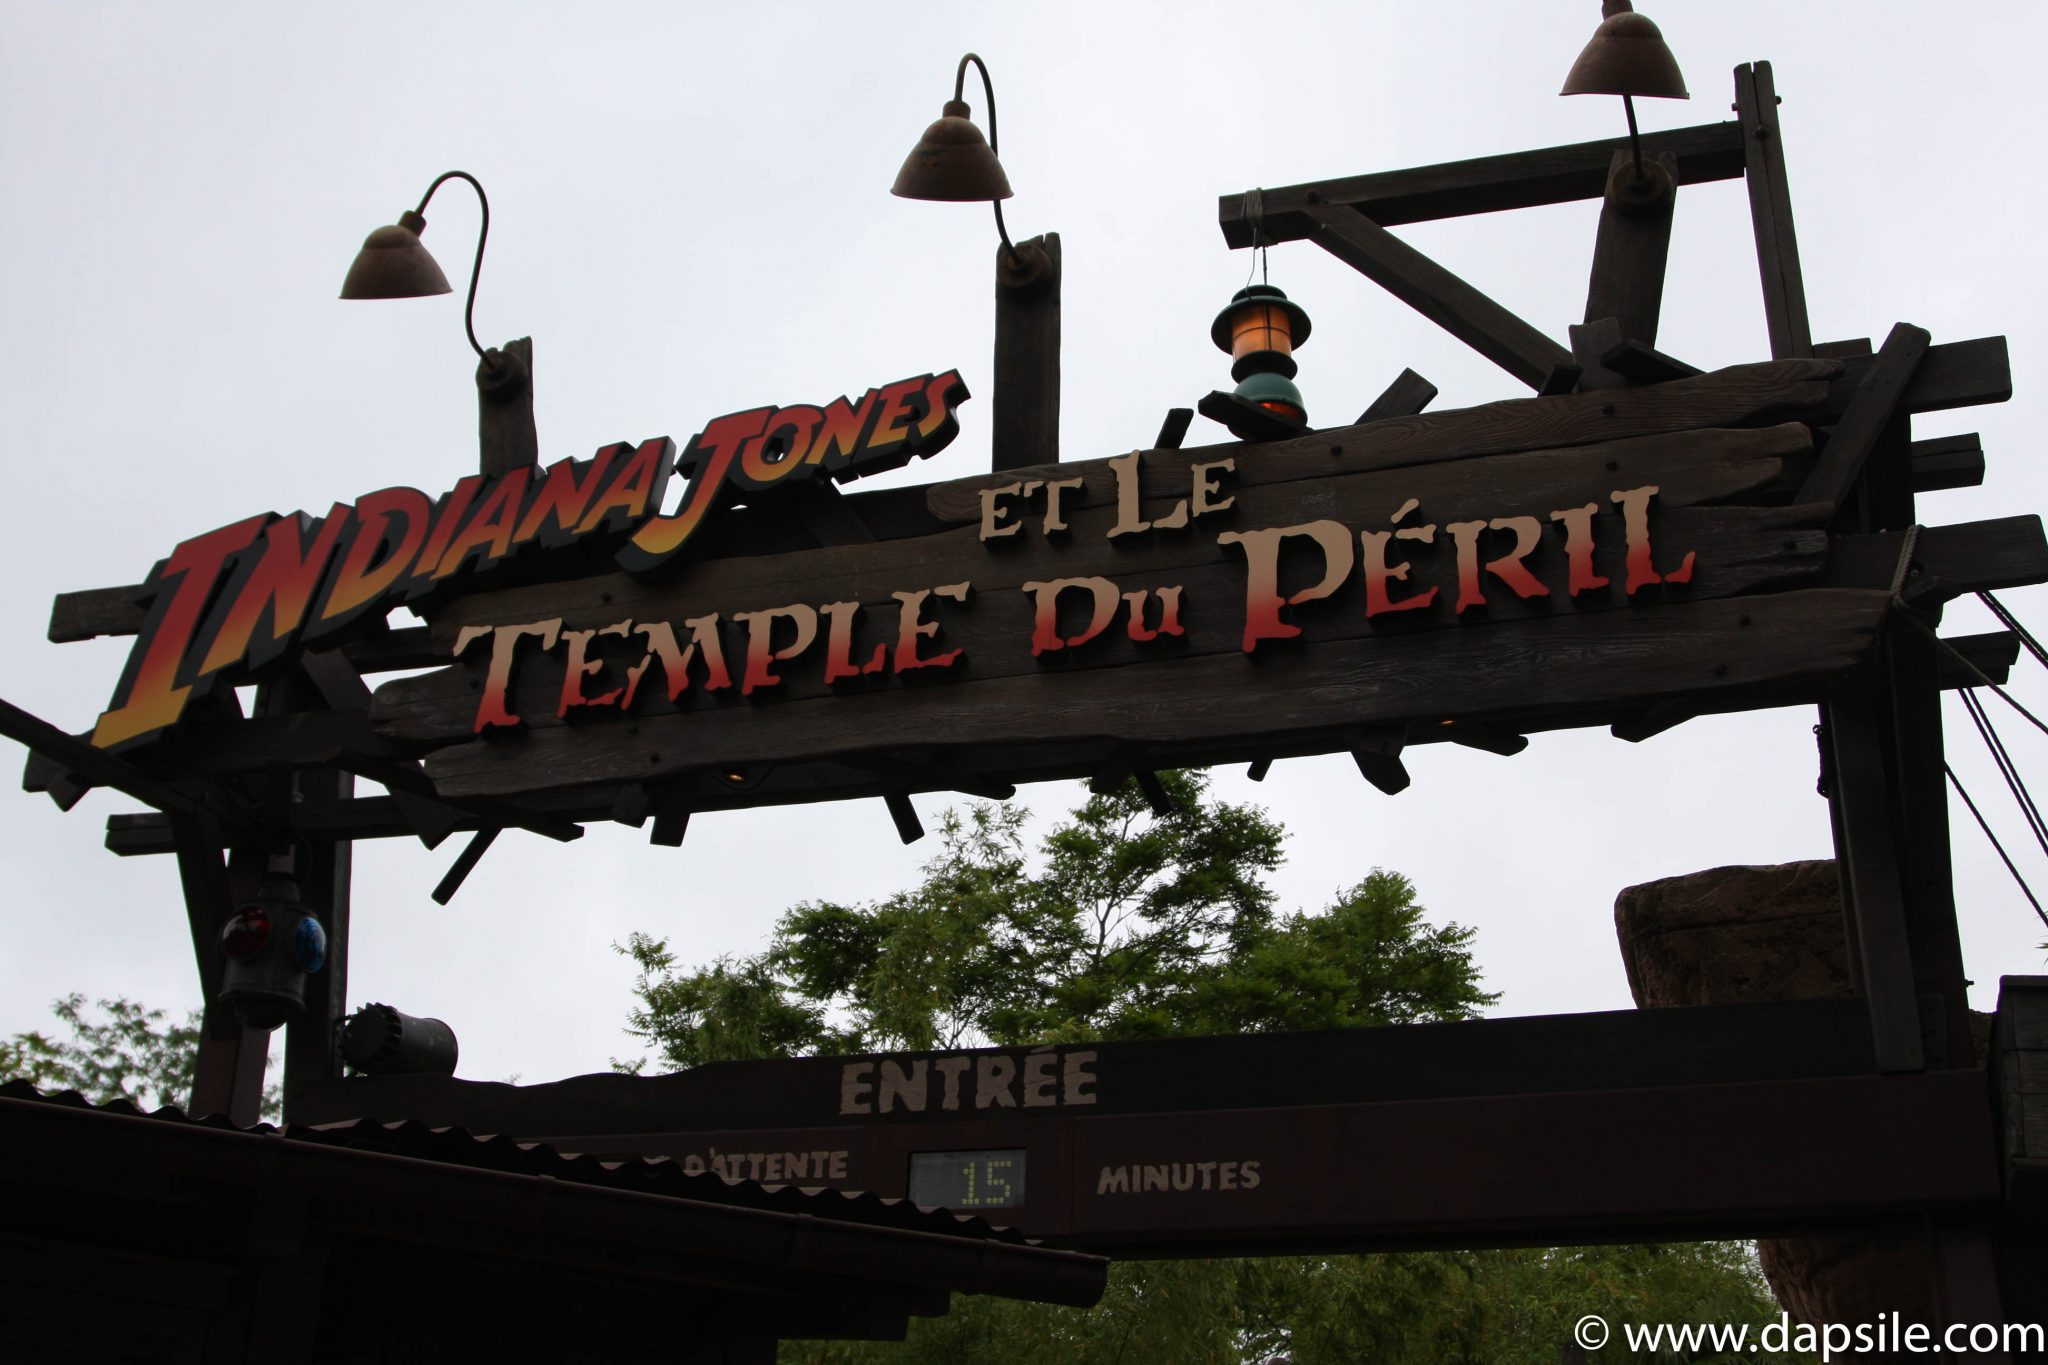 Entrance to the Indiana Jones Ride in Disneyland in Paris Sights